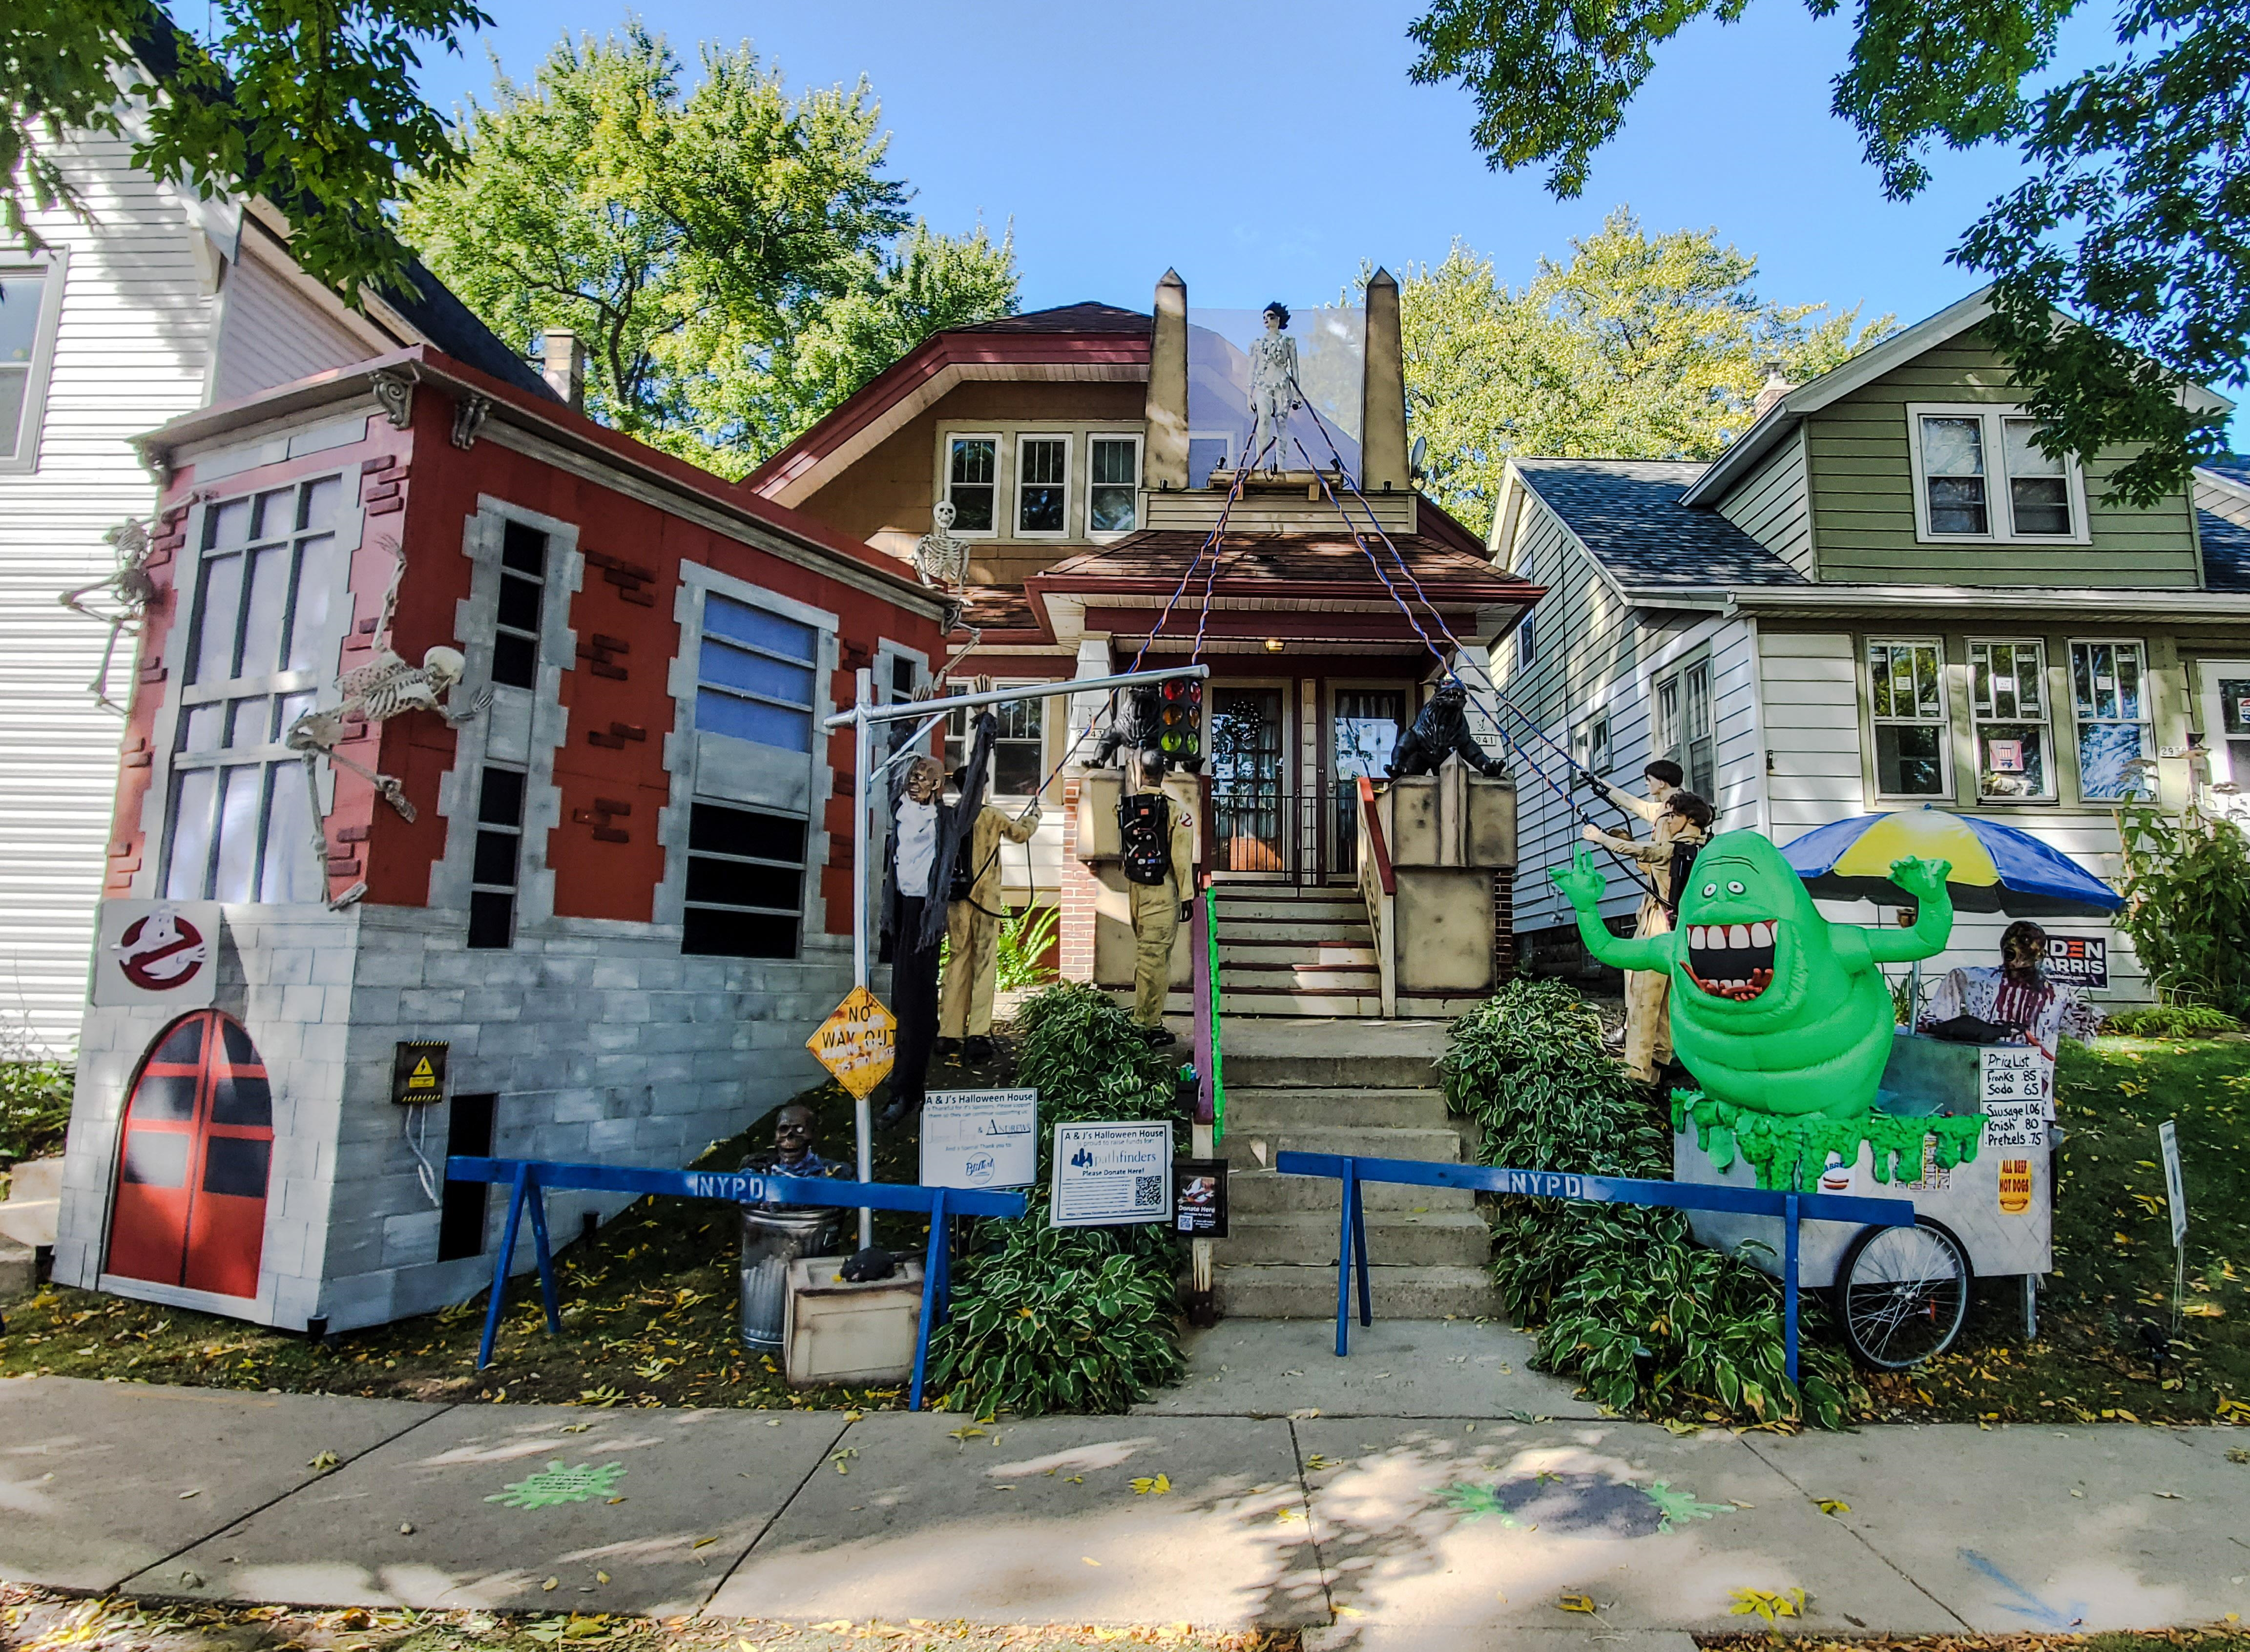 Ghostbusters Lawn Display Lights up Bay View House